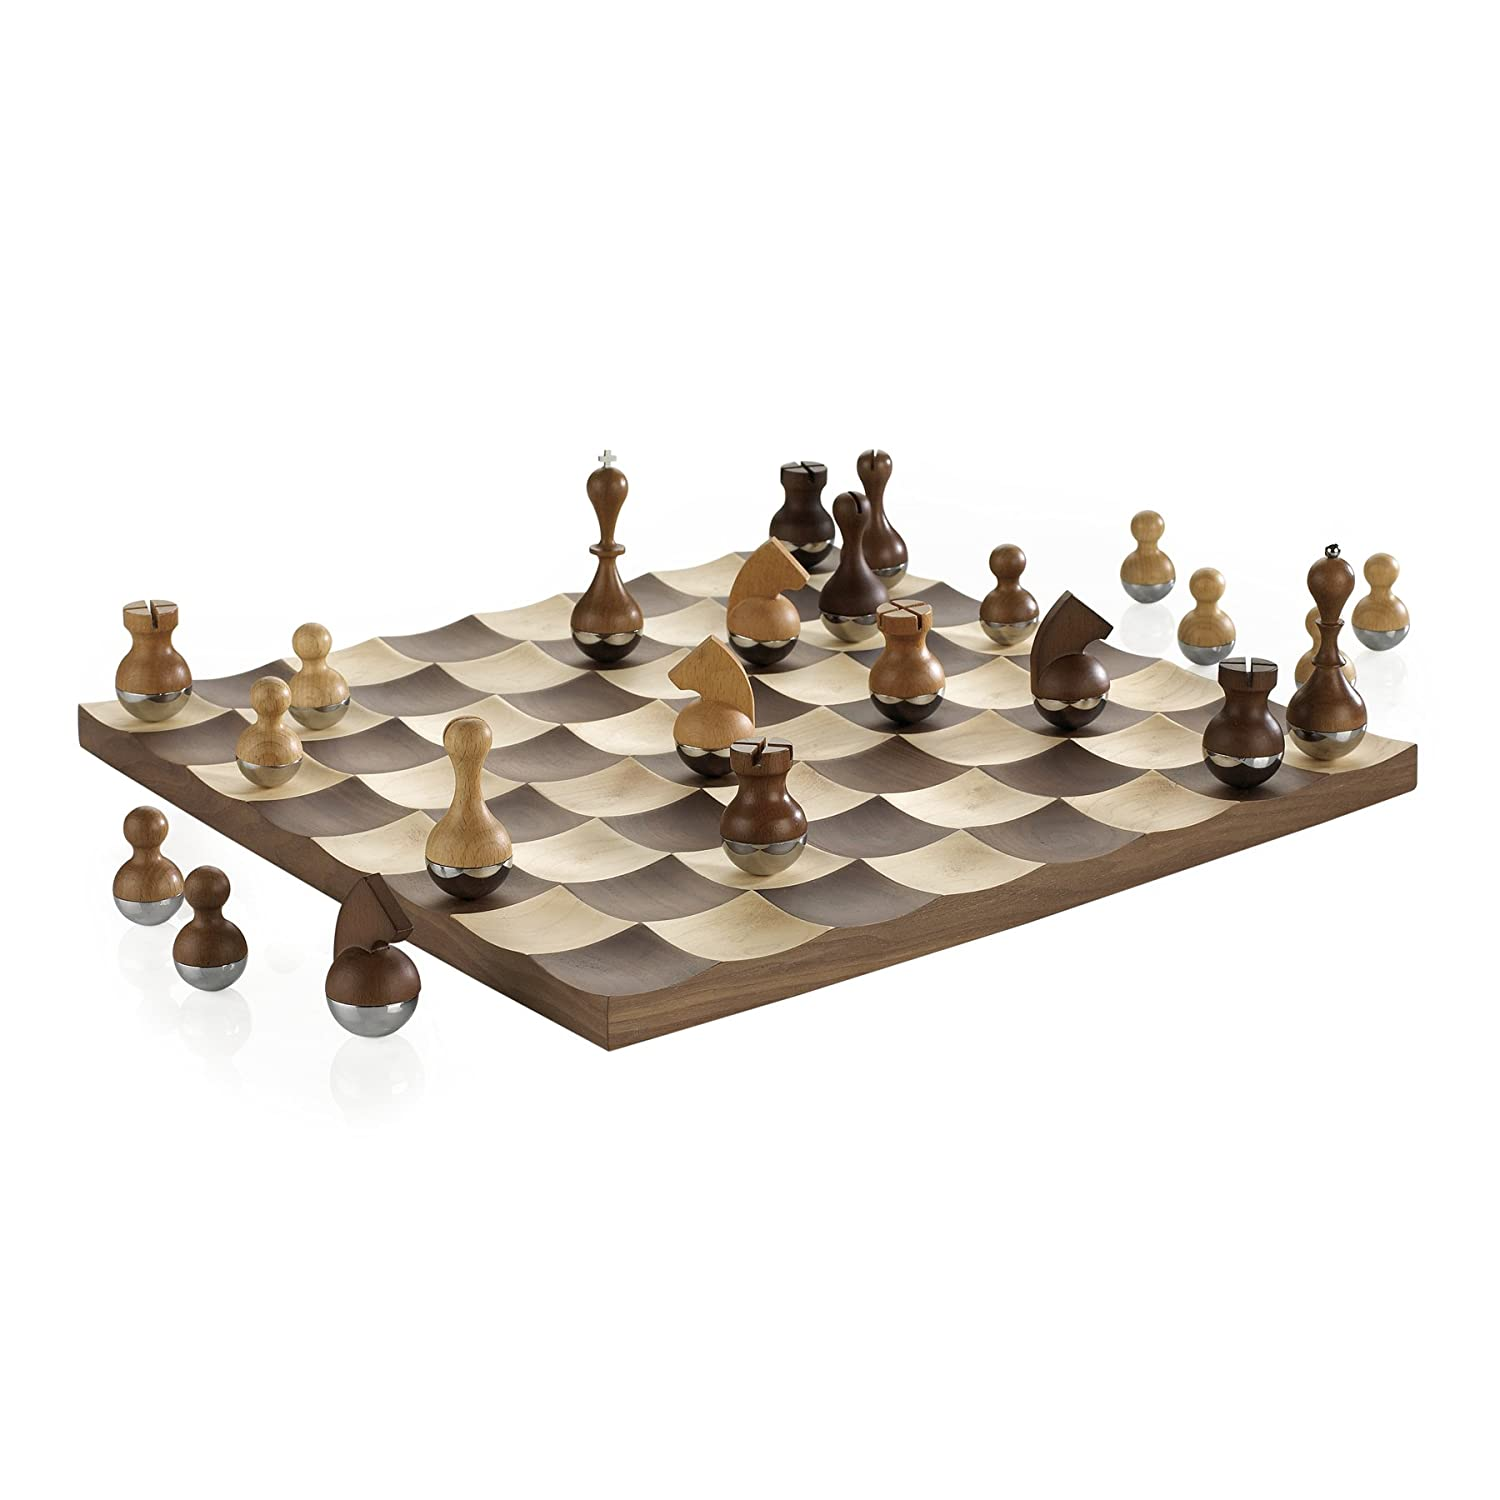 Buy Wobble chess set by Umbra